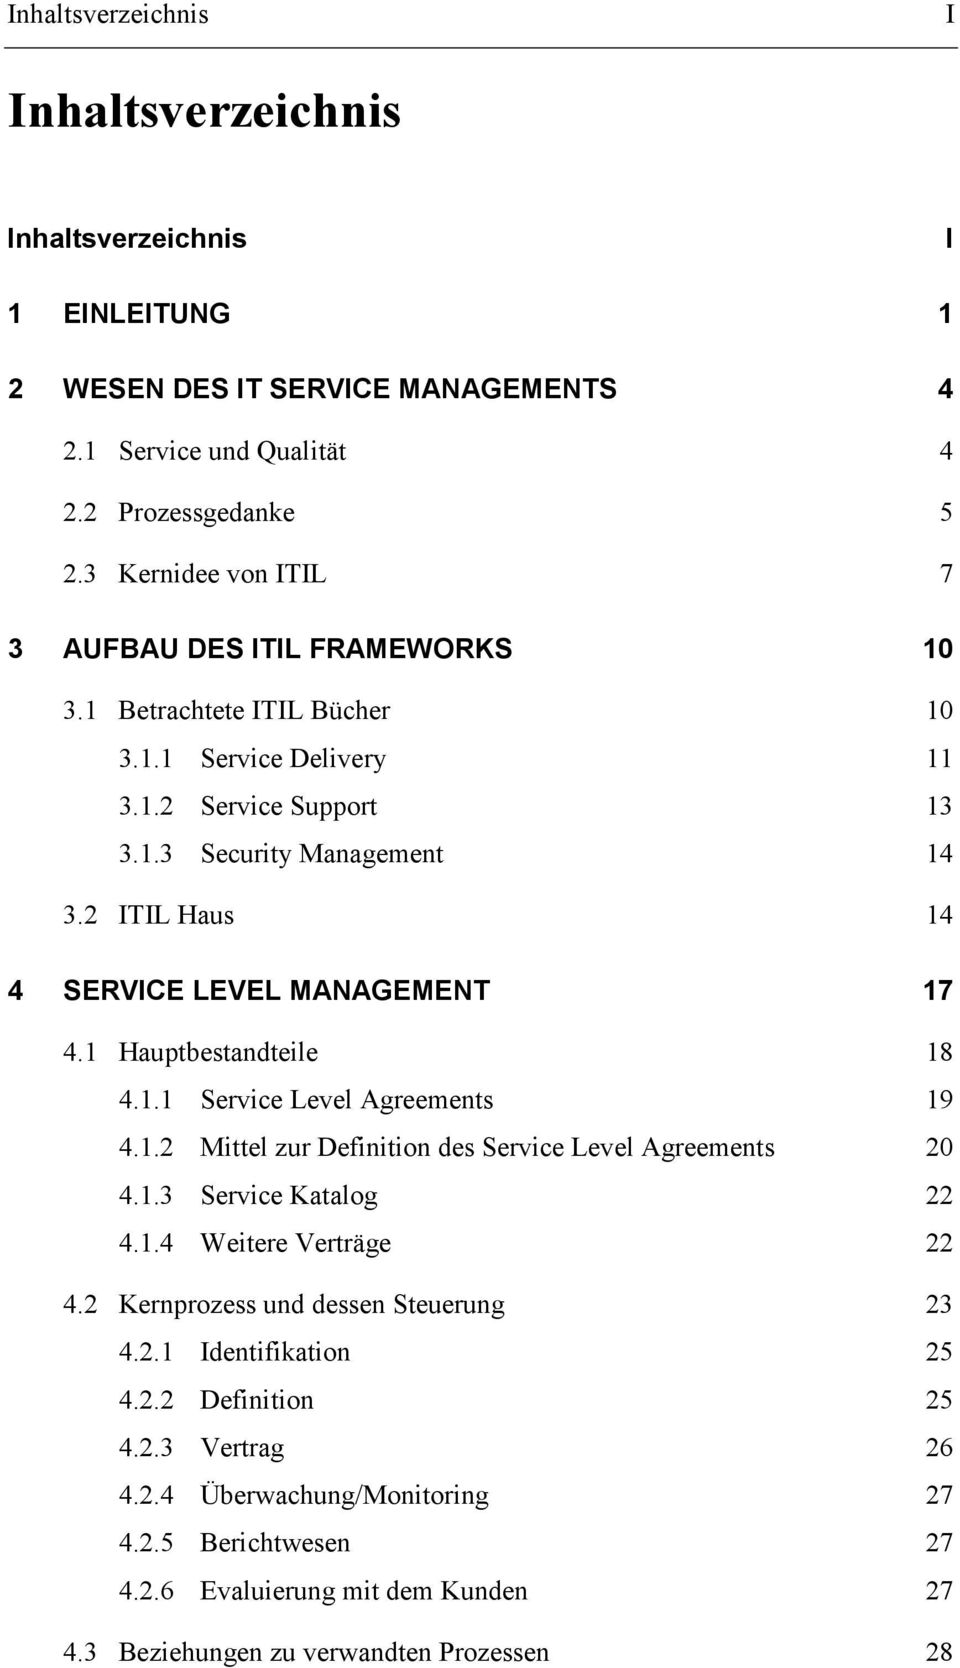 2 ITIL Haus 14 4 SERVICE LEVEL MANAGEMENT 17 4.1 Hauptbestandteile 18 4.1.1 Service Level Agreements 19 4.1.2 Mittel zur Definition des Service Level Agreements 20 4.1.3 Service Katalog 22 4.1.4 Weitere Verträge 22 4.